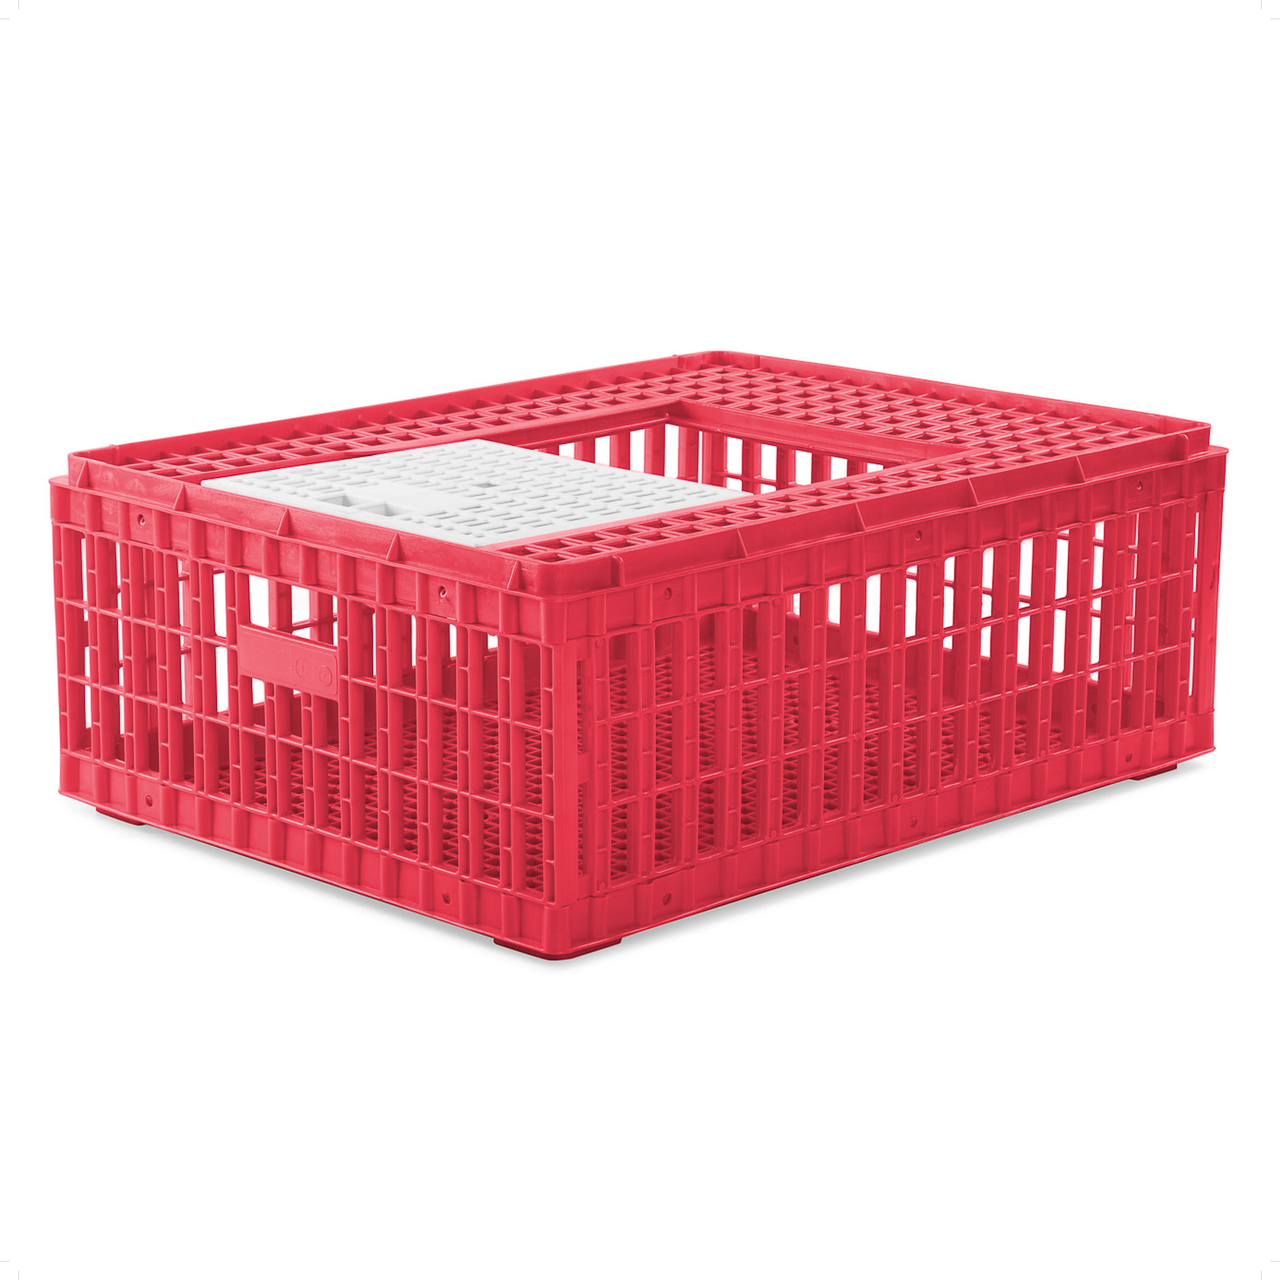 Poultry Box (Red)